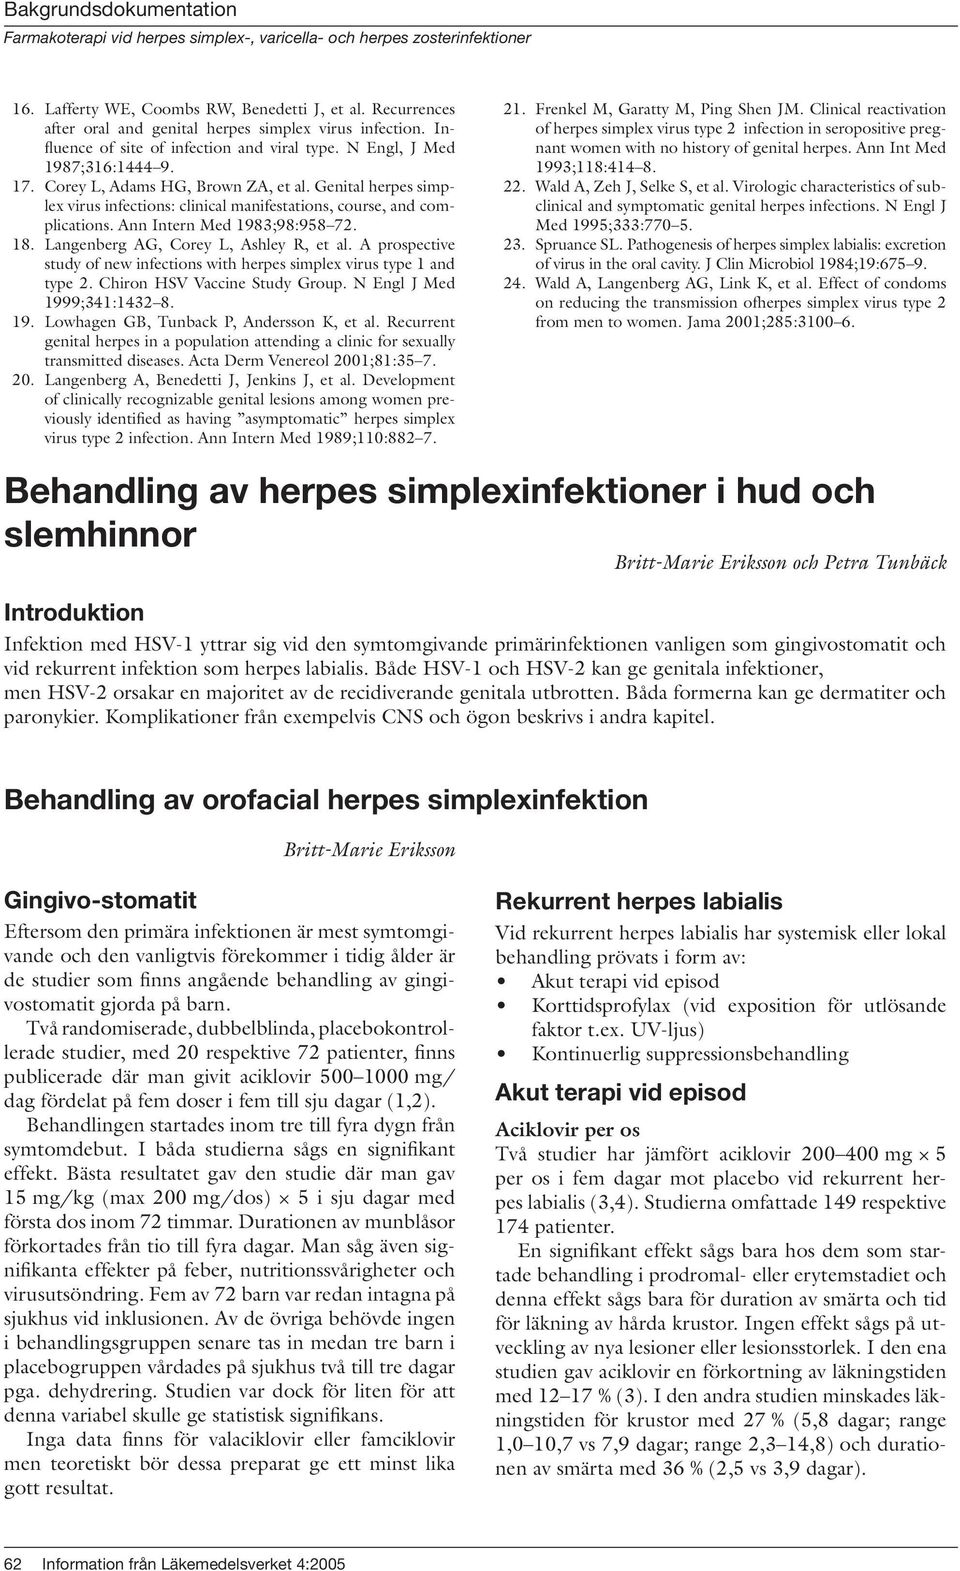 Langenberg AG, Corey L, Ashley R, et al. A prospective study of new infections with herpes simplex virus type 1 and type 2. Chiron HSV Vaccine Study Group. N Engl J Med 199